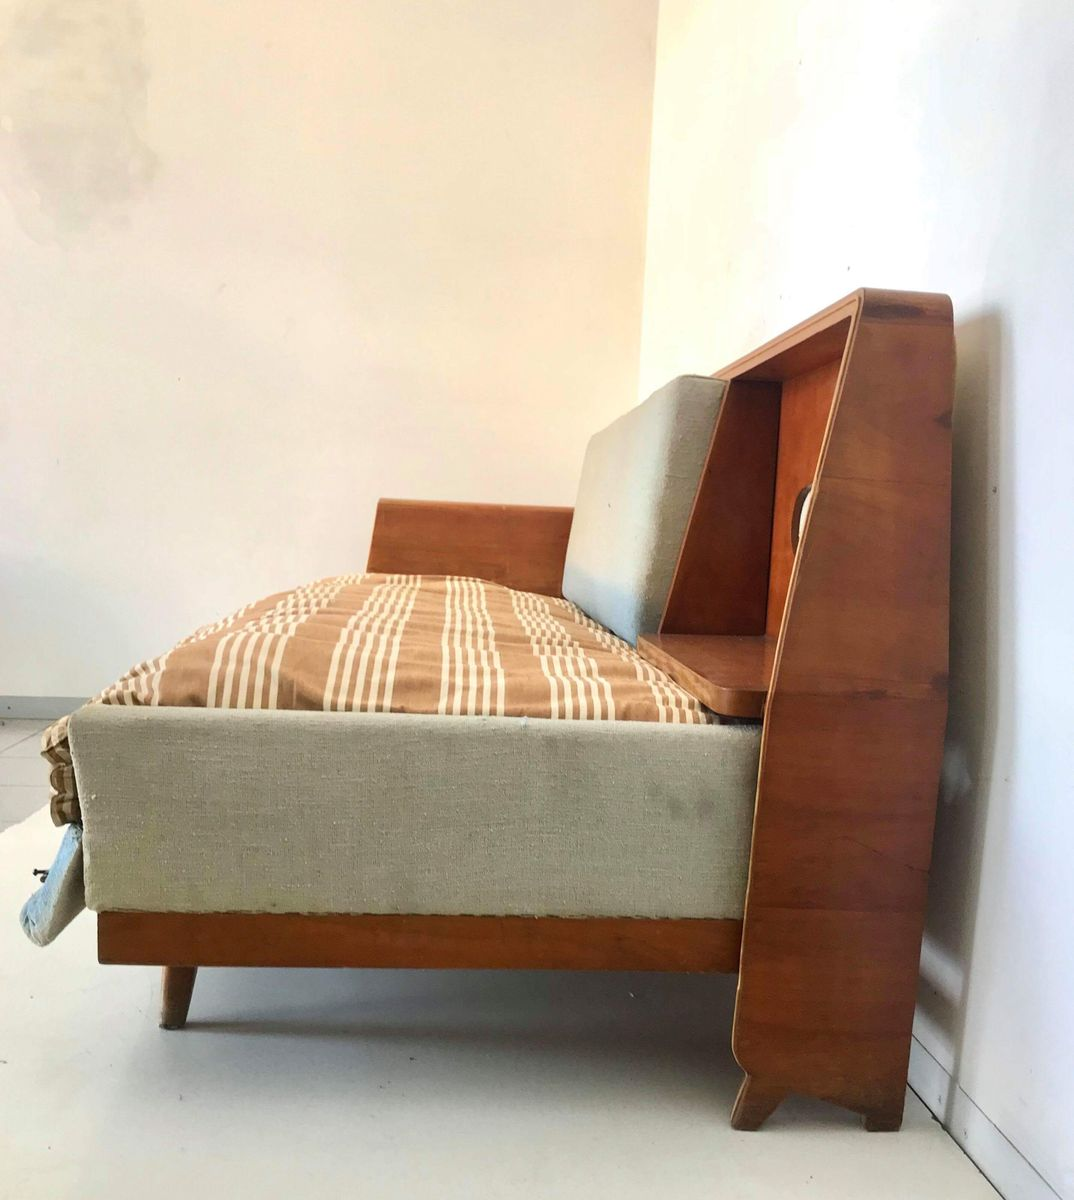 Sofa Bed With Storage For Sale: Sofa Bed With Storage Compartment, 1960s For Sale At Pamono